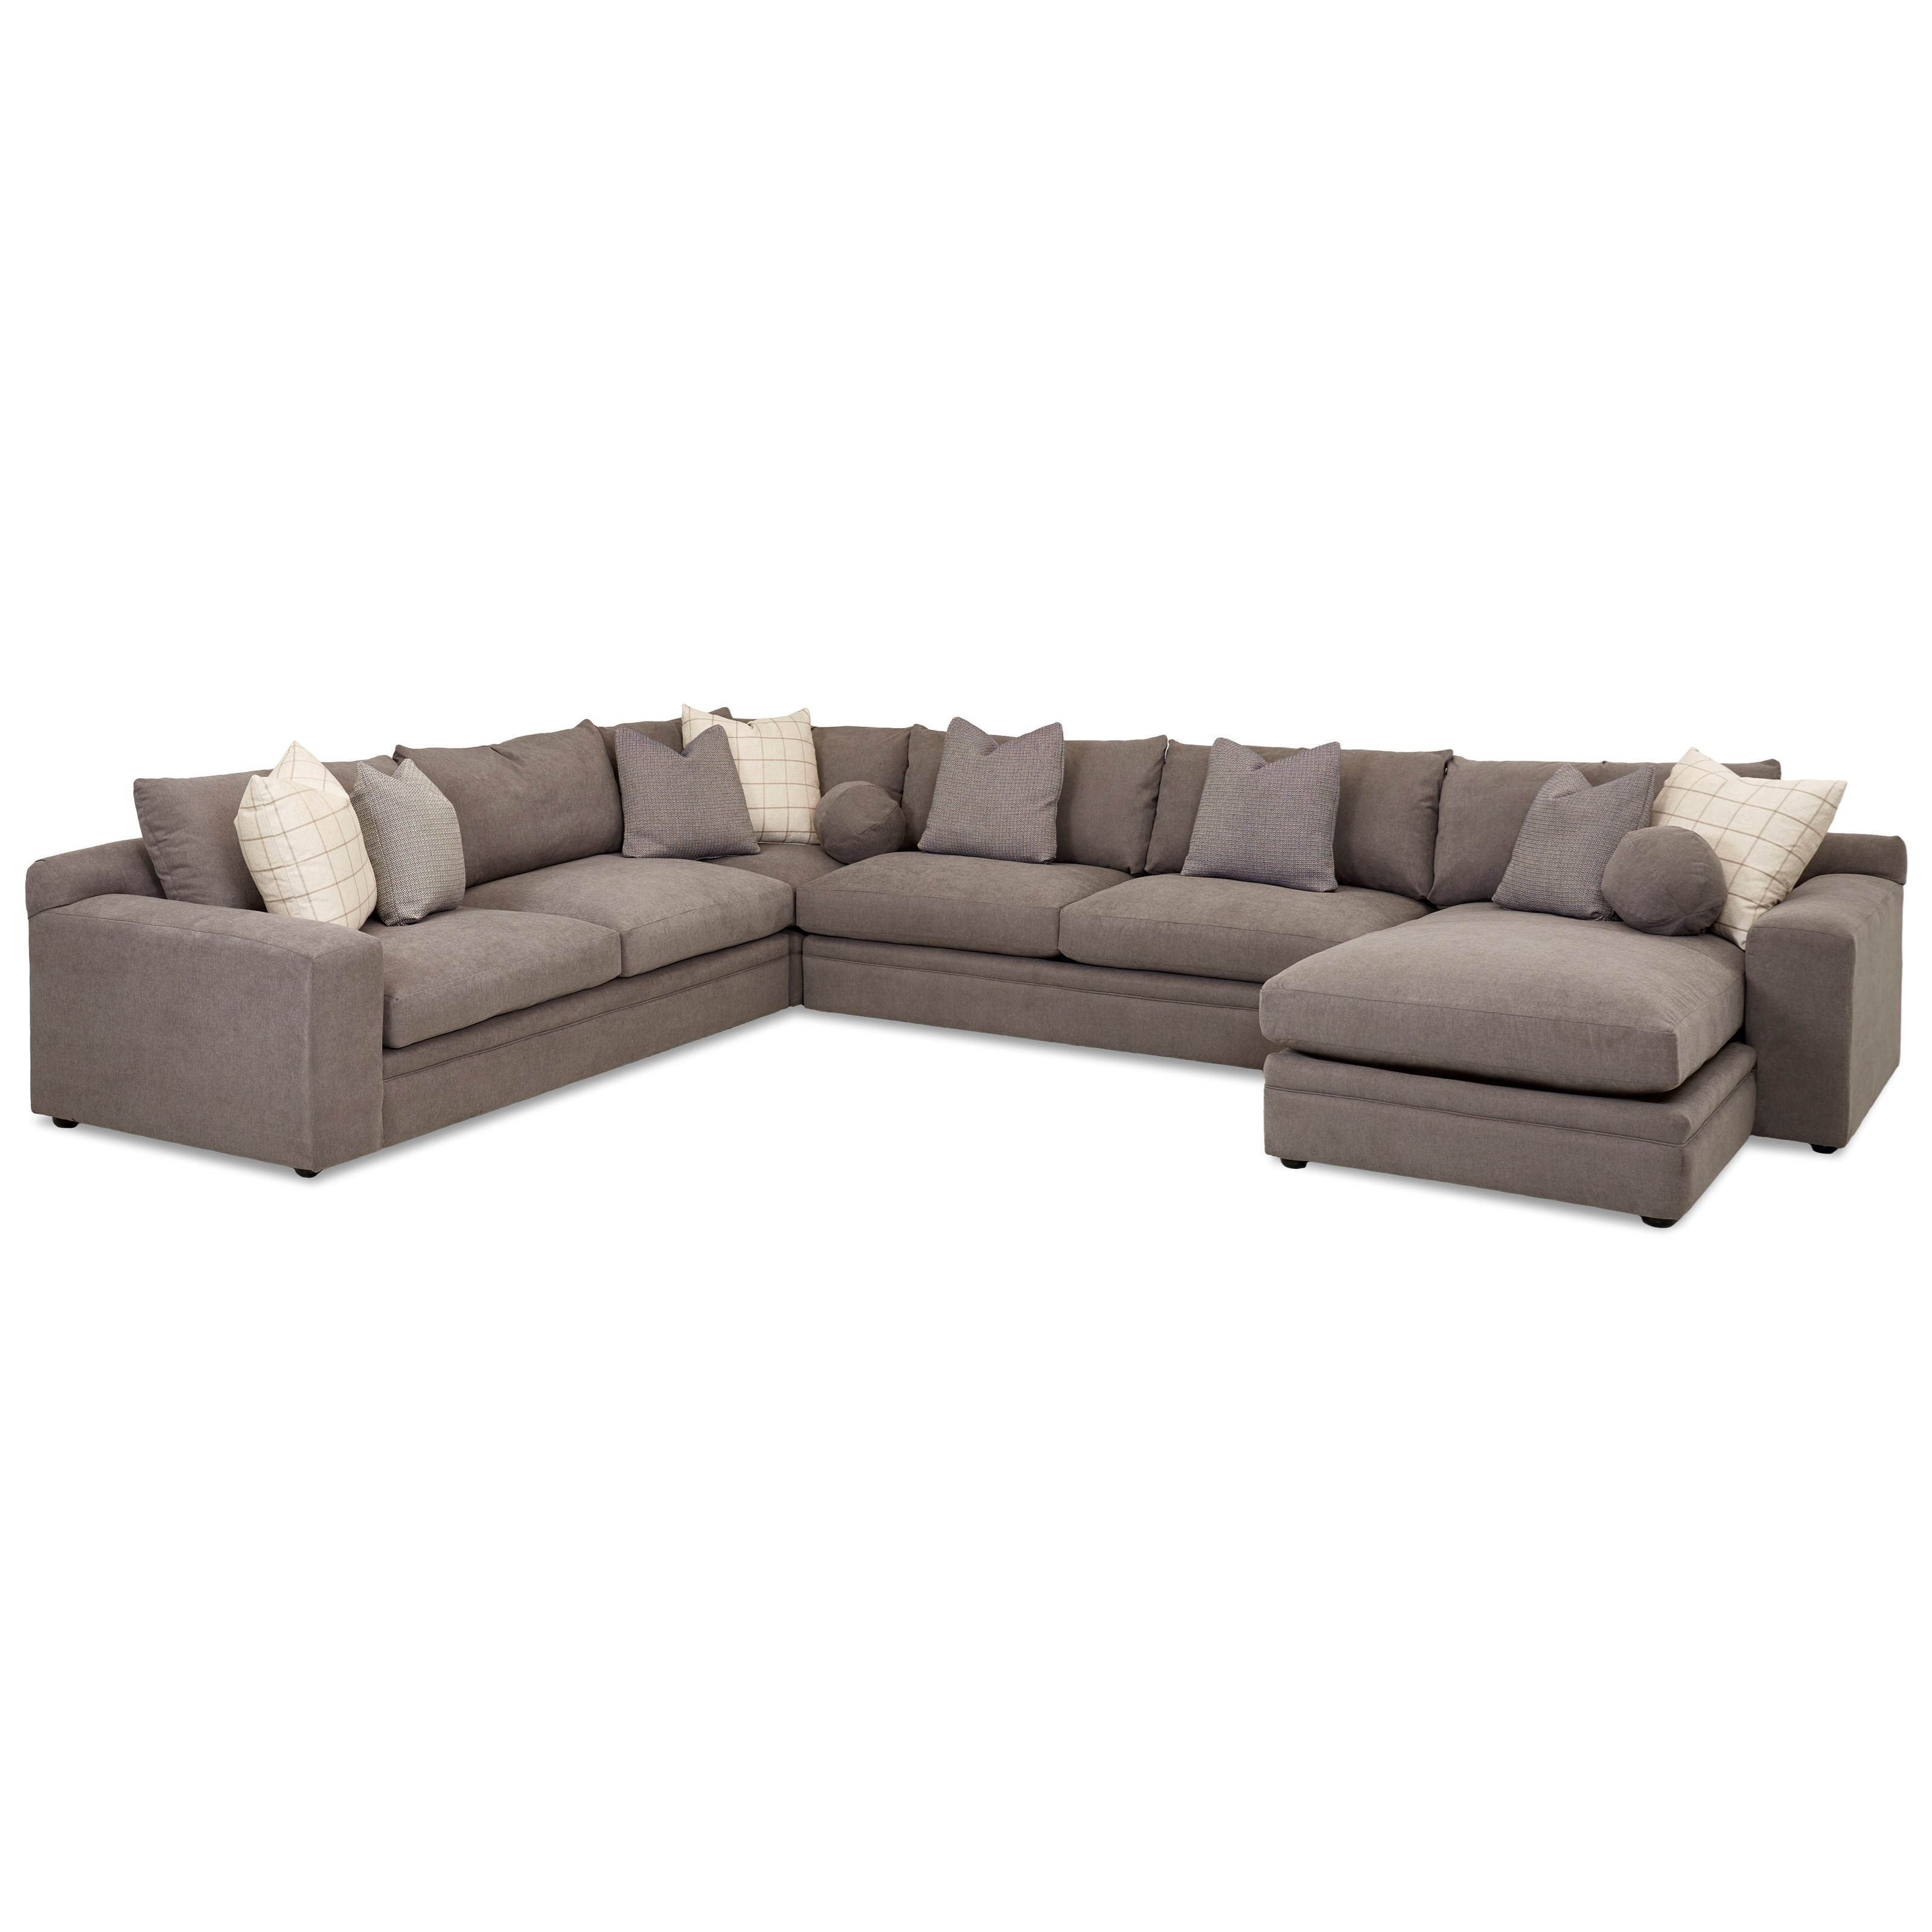 Casa Mesa 4 Pc Sectional Sofa w/ RAF Chaise by Klaussner at Johnny Janosik